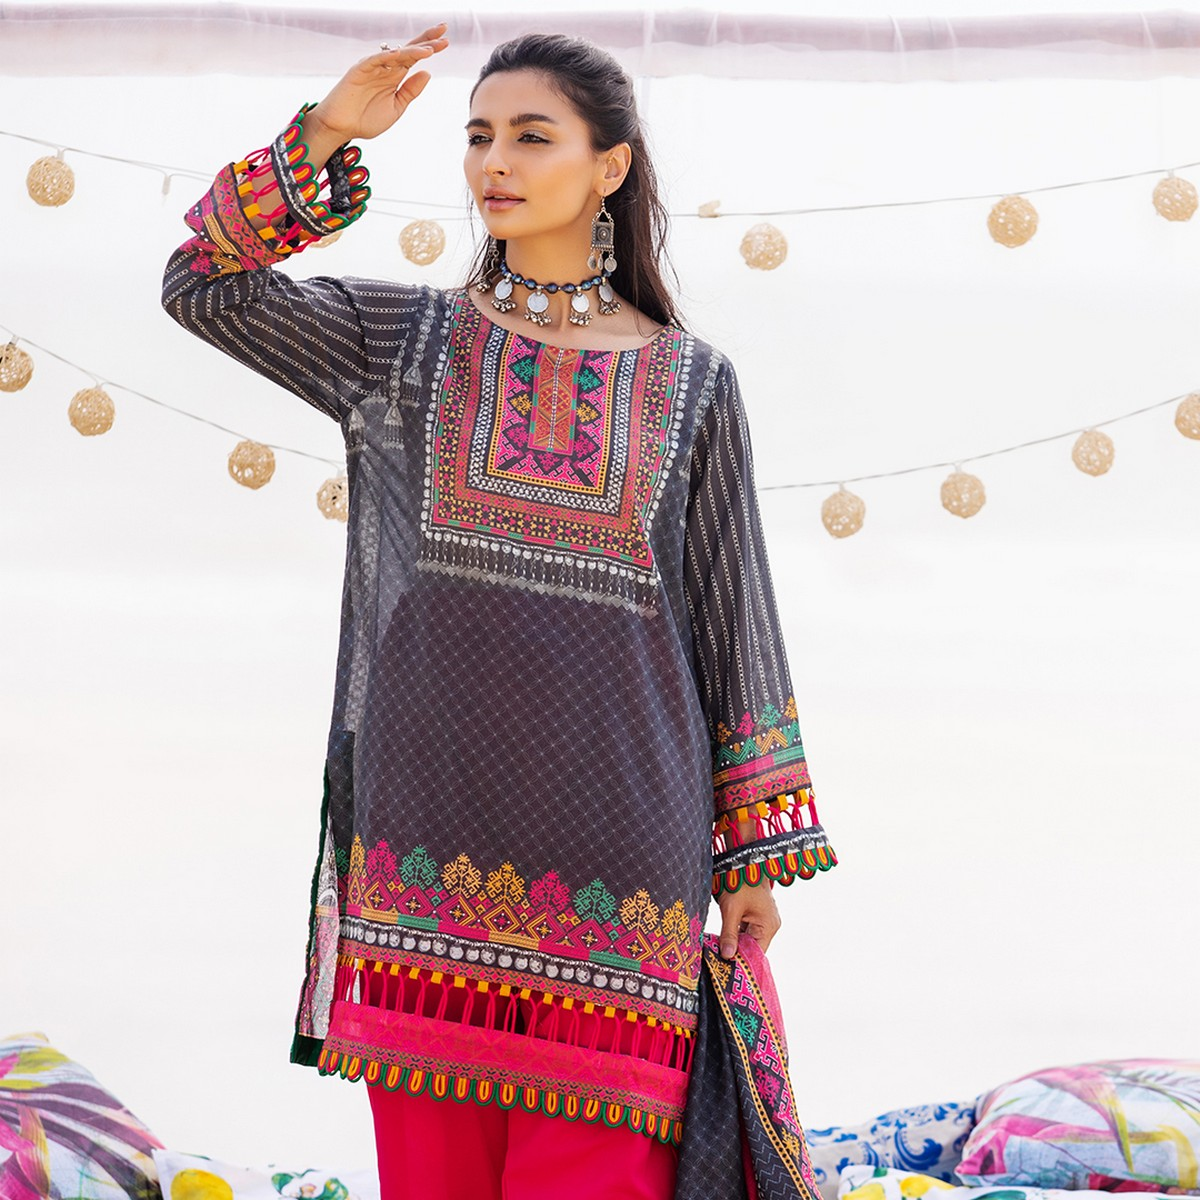 Maahru Pink Scarlet  - Women's Unstitched 3PC Summer Printed Lawn with Dupatta